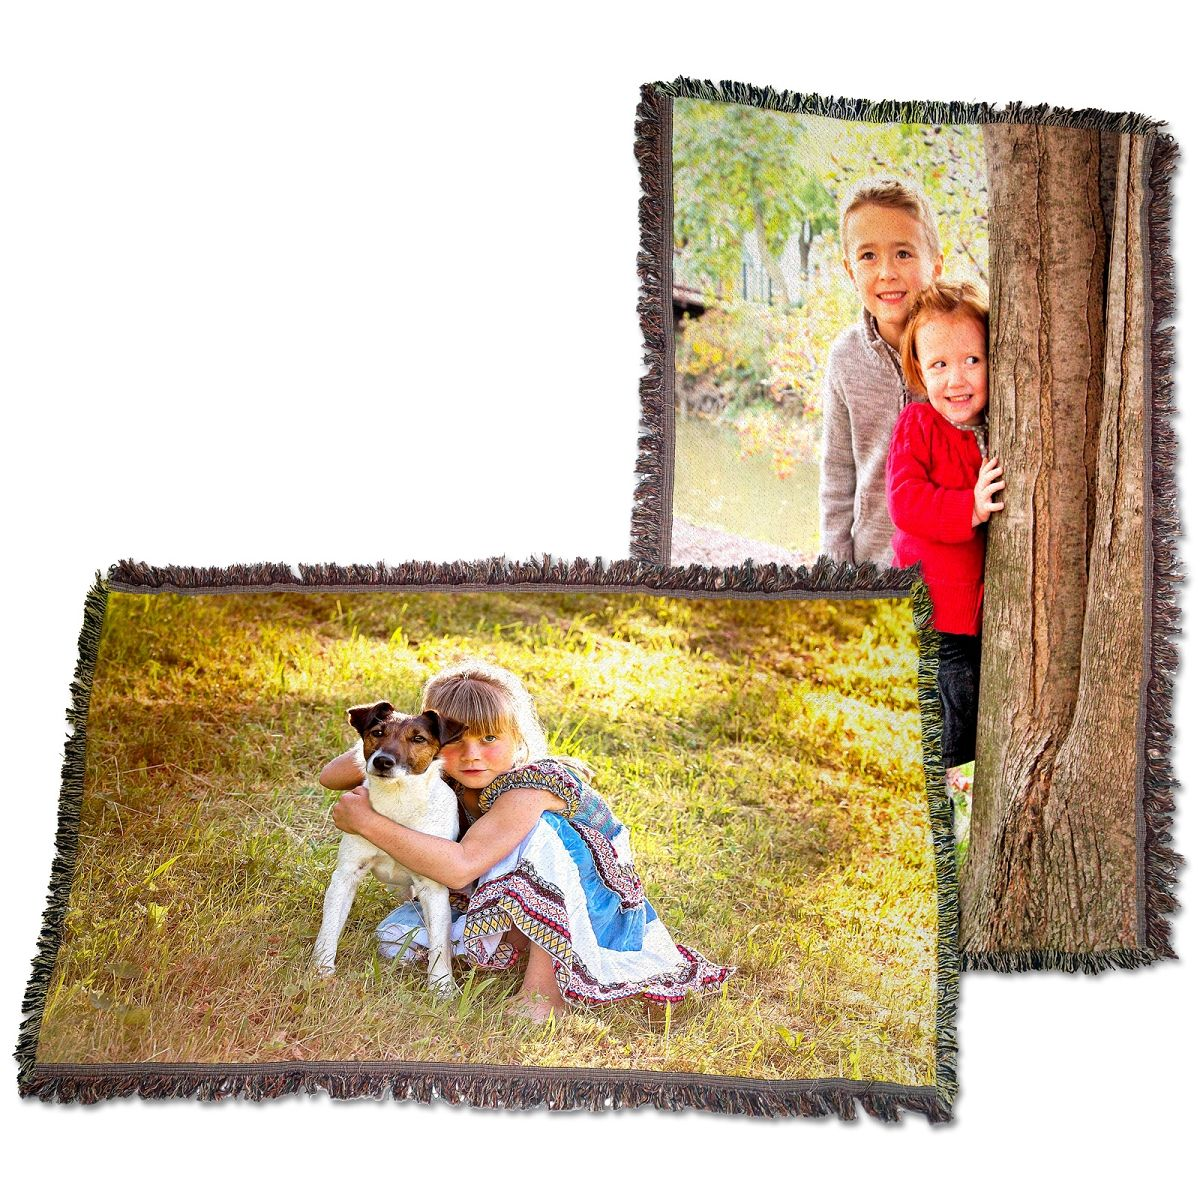 High Definition Personalized Woven Photo Blanket - 54x38 | PersonalThrows.com